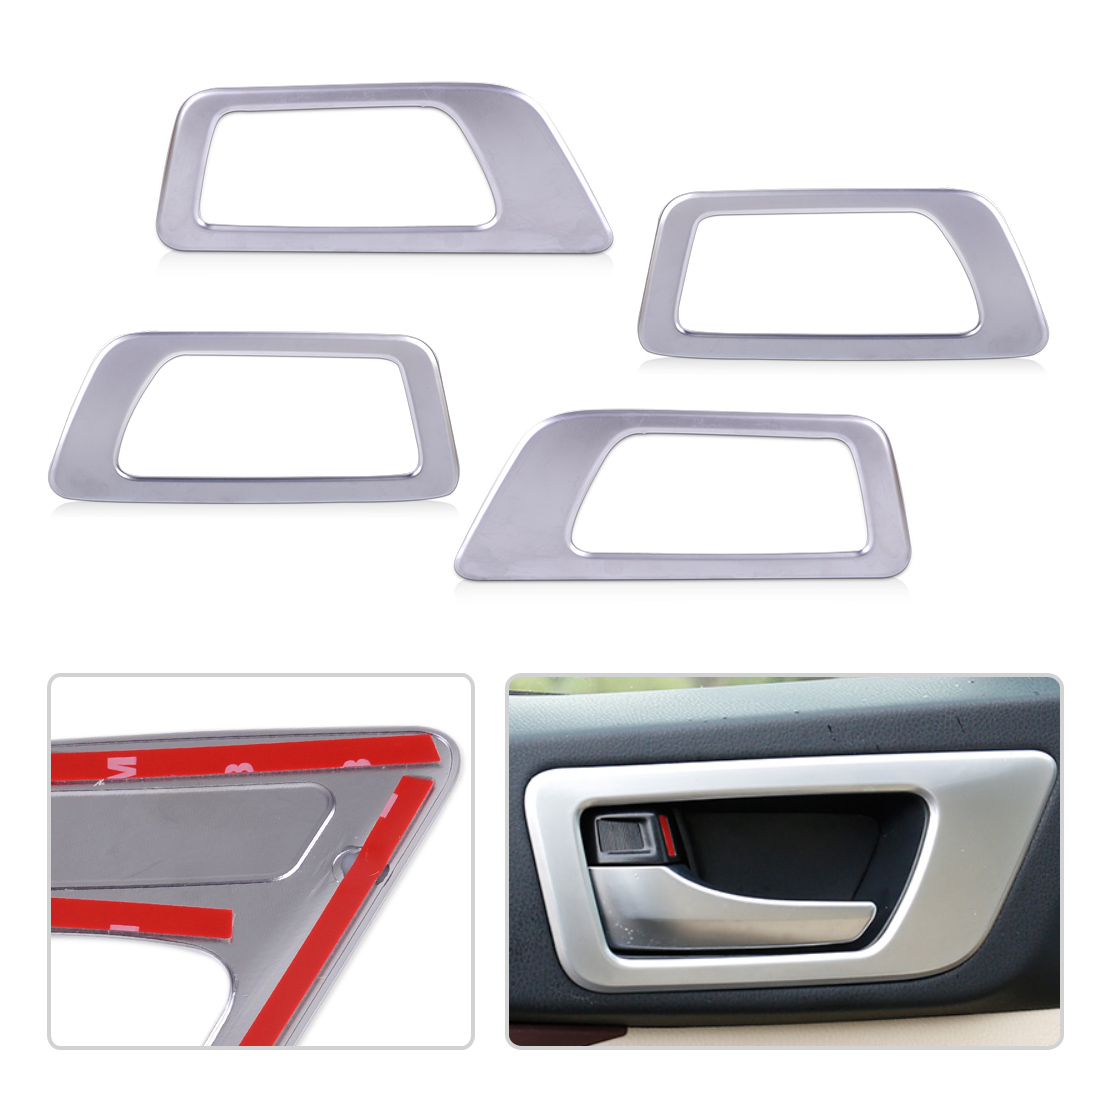 CITALL Car-styling 4pcs Interior ABS Chrome Door Handle Bowl Trim fit for Toyota Highlander 2015 2016 2017